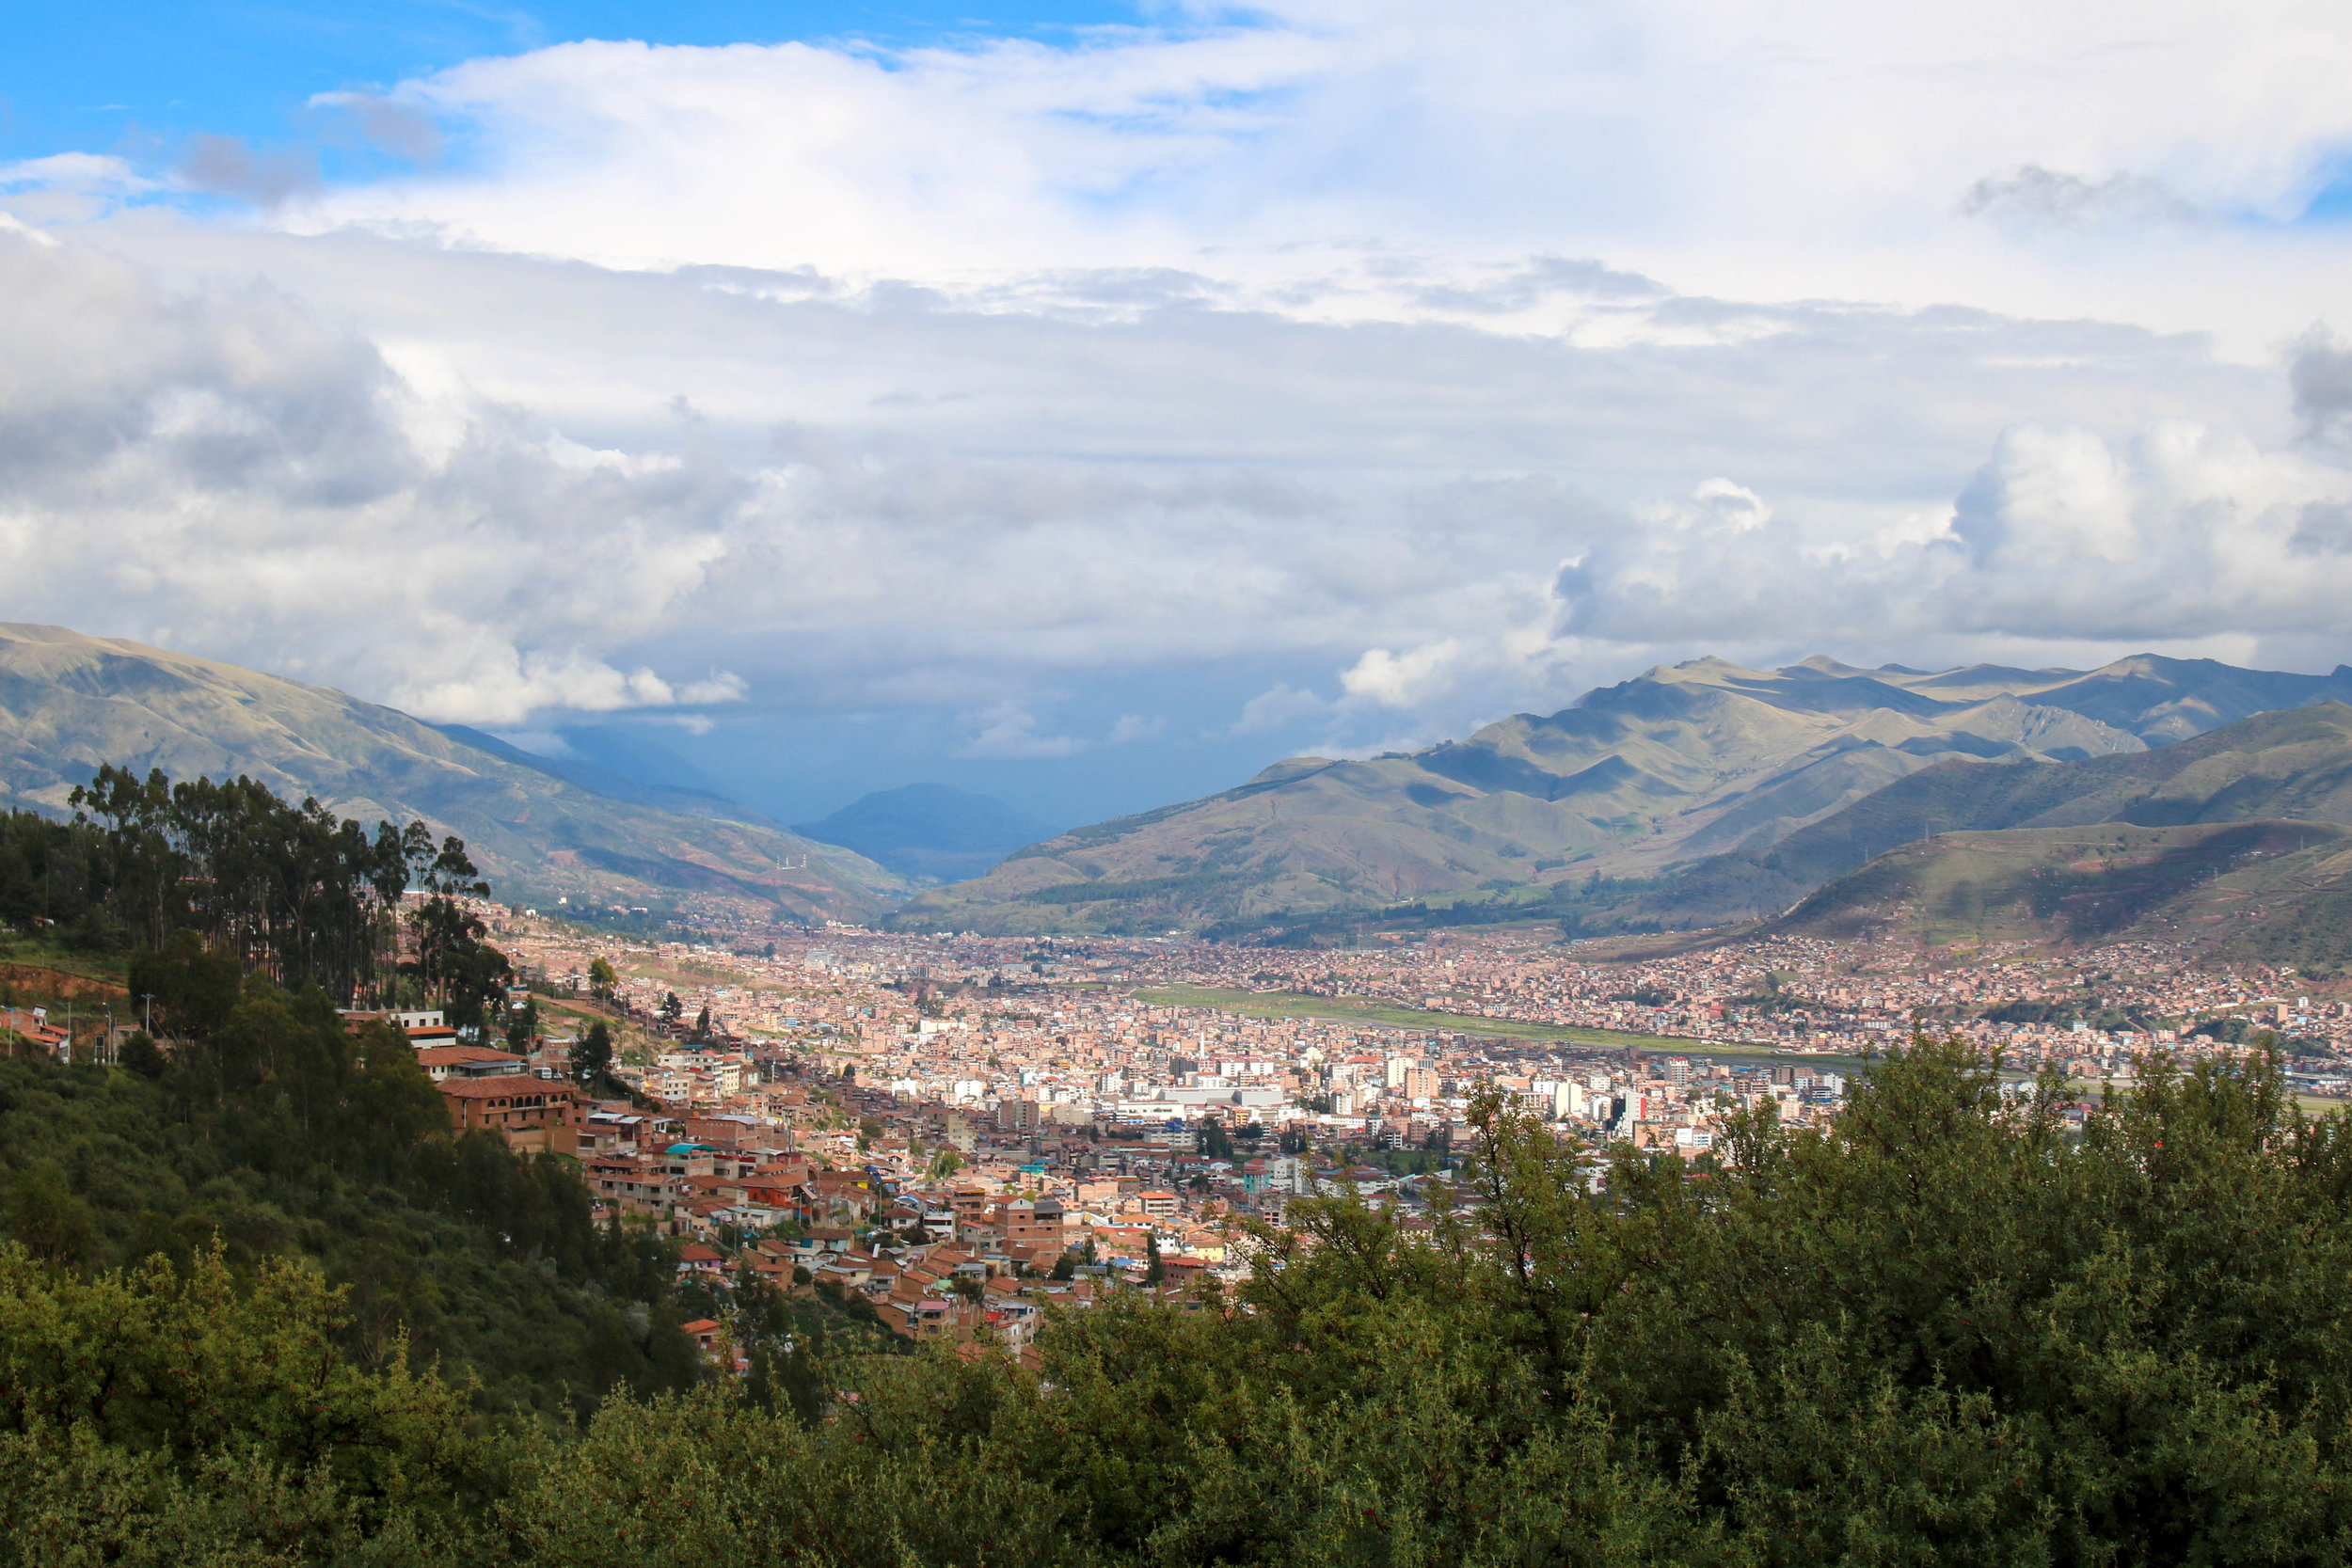 Cusco from Saqsayhuaman in the Sacred Valley, Peru